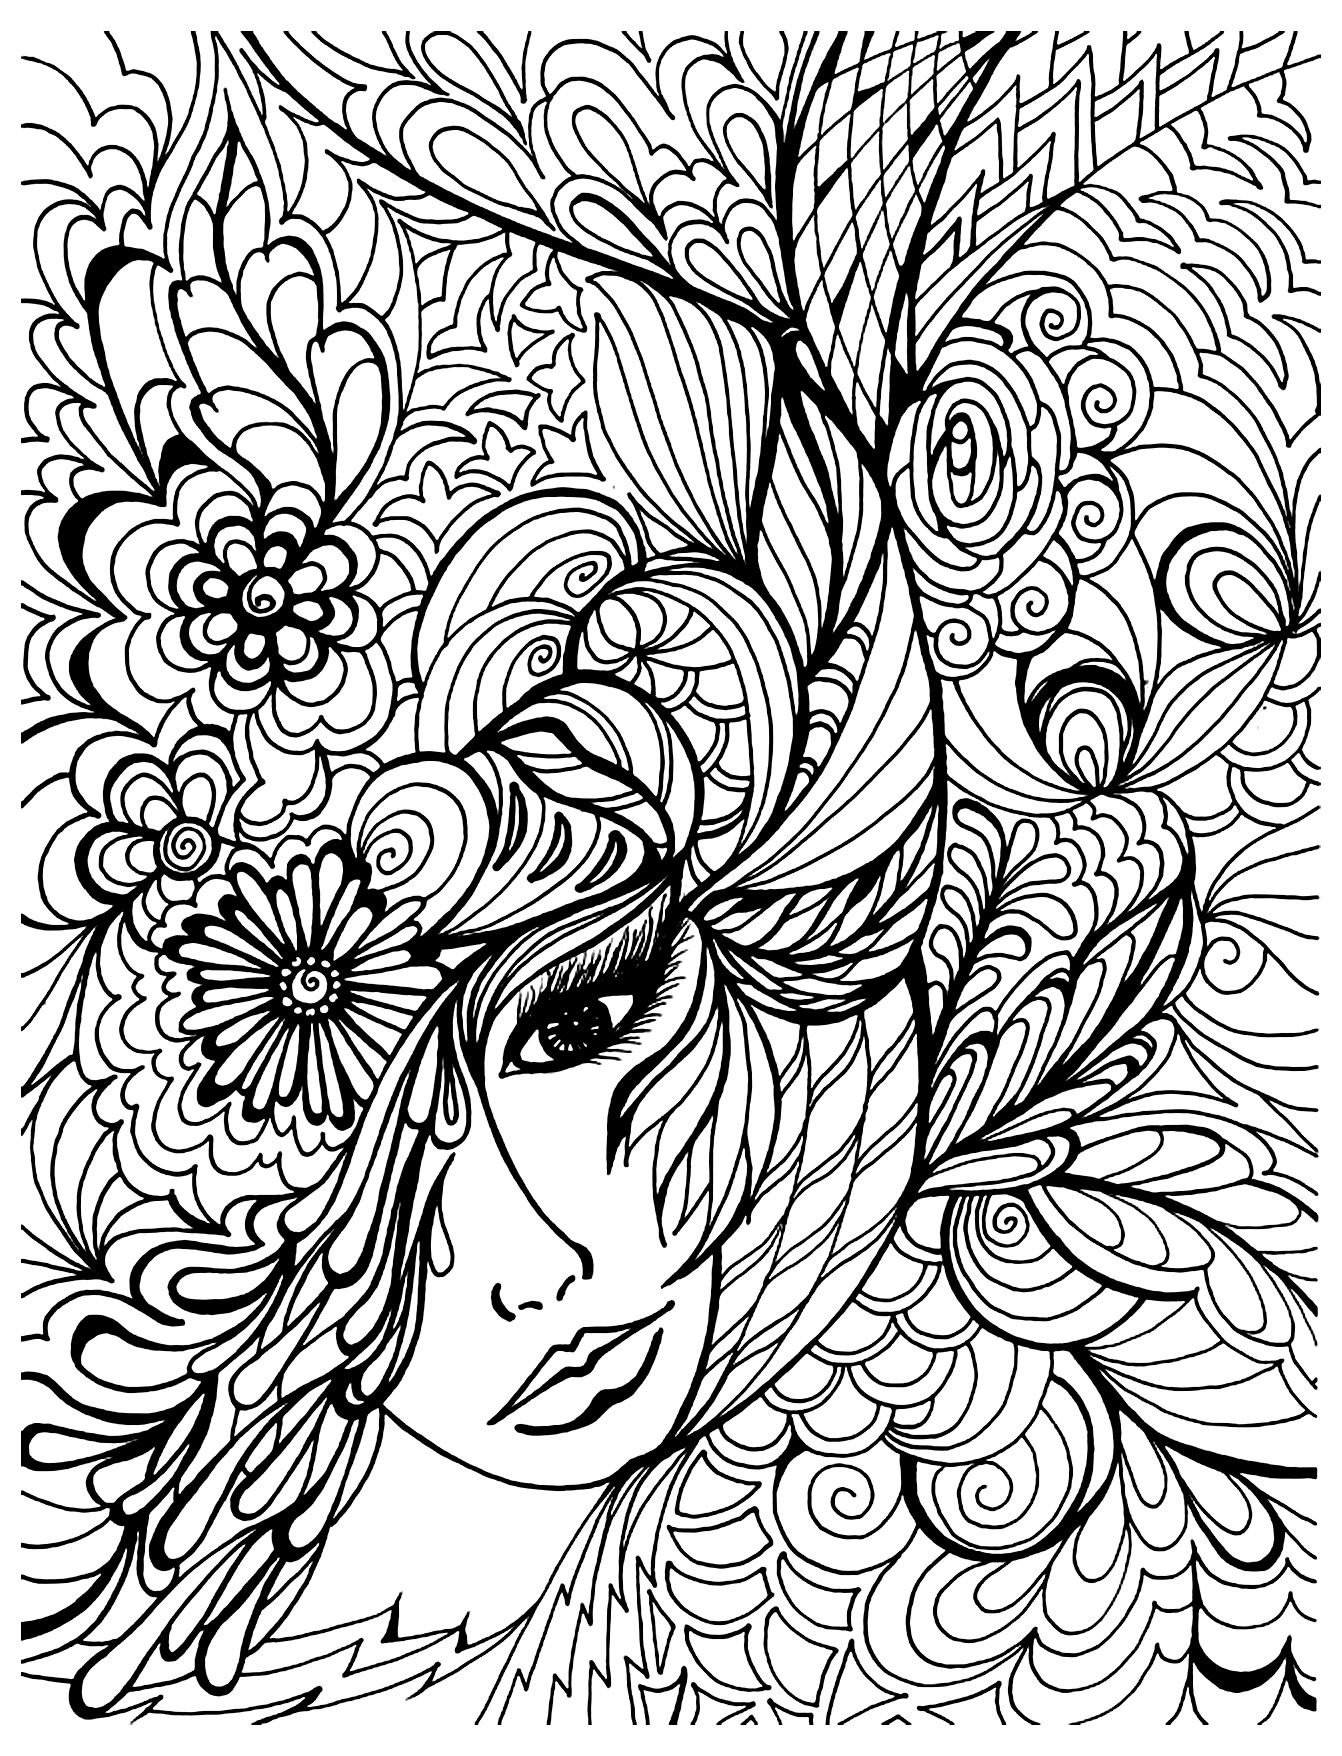 to print this free coloring page coloring face vegetation click on - Cool Coloring Pages To Print For Free